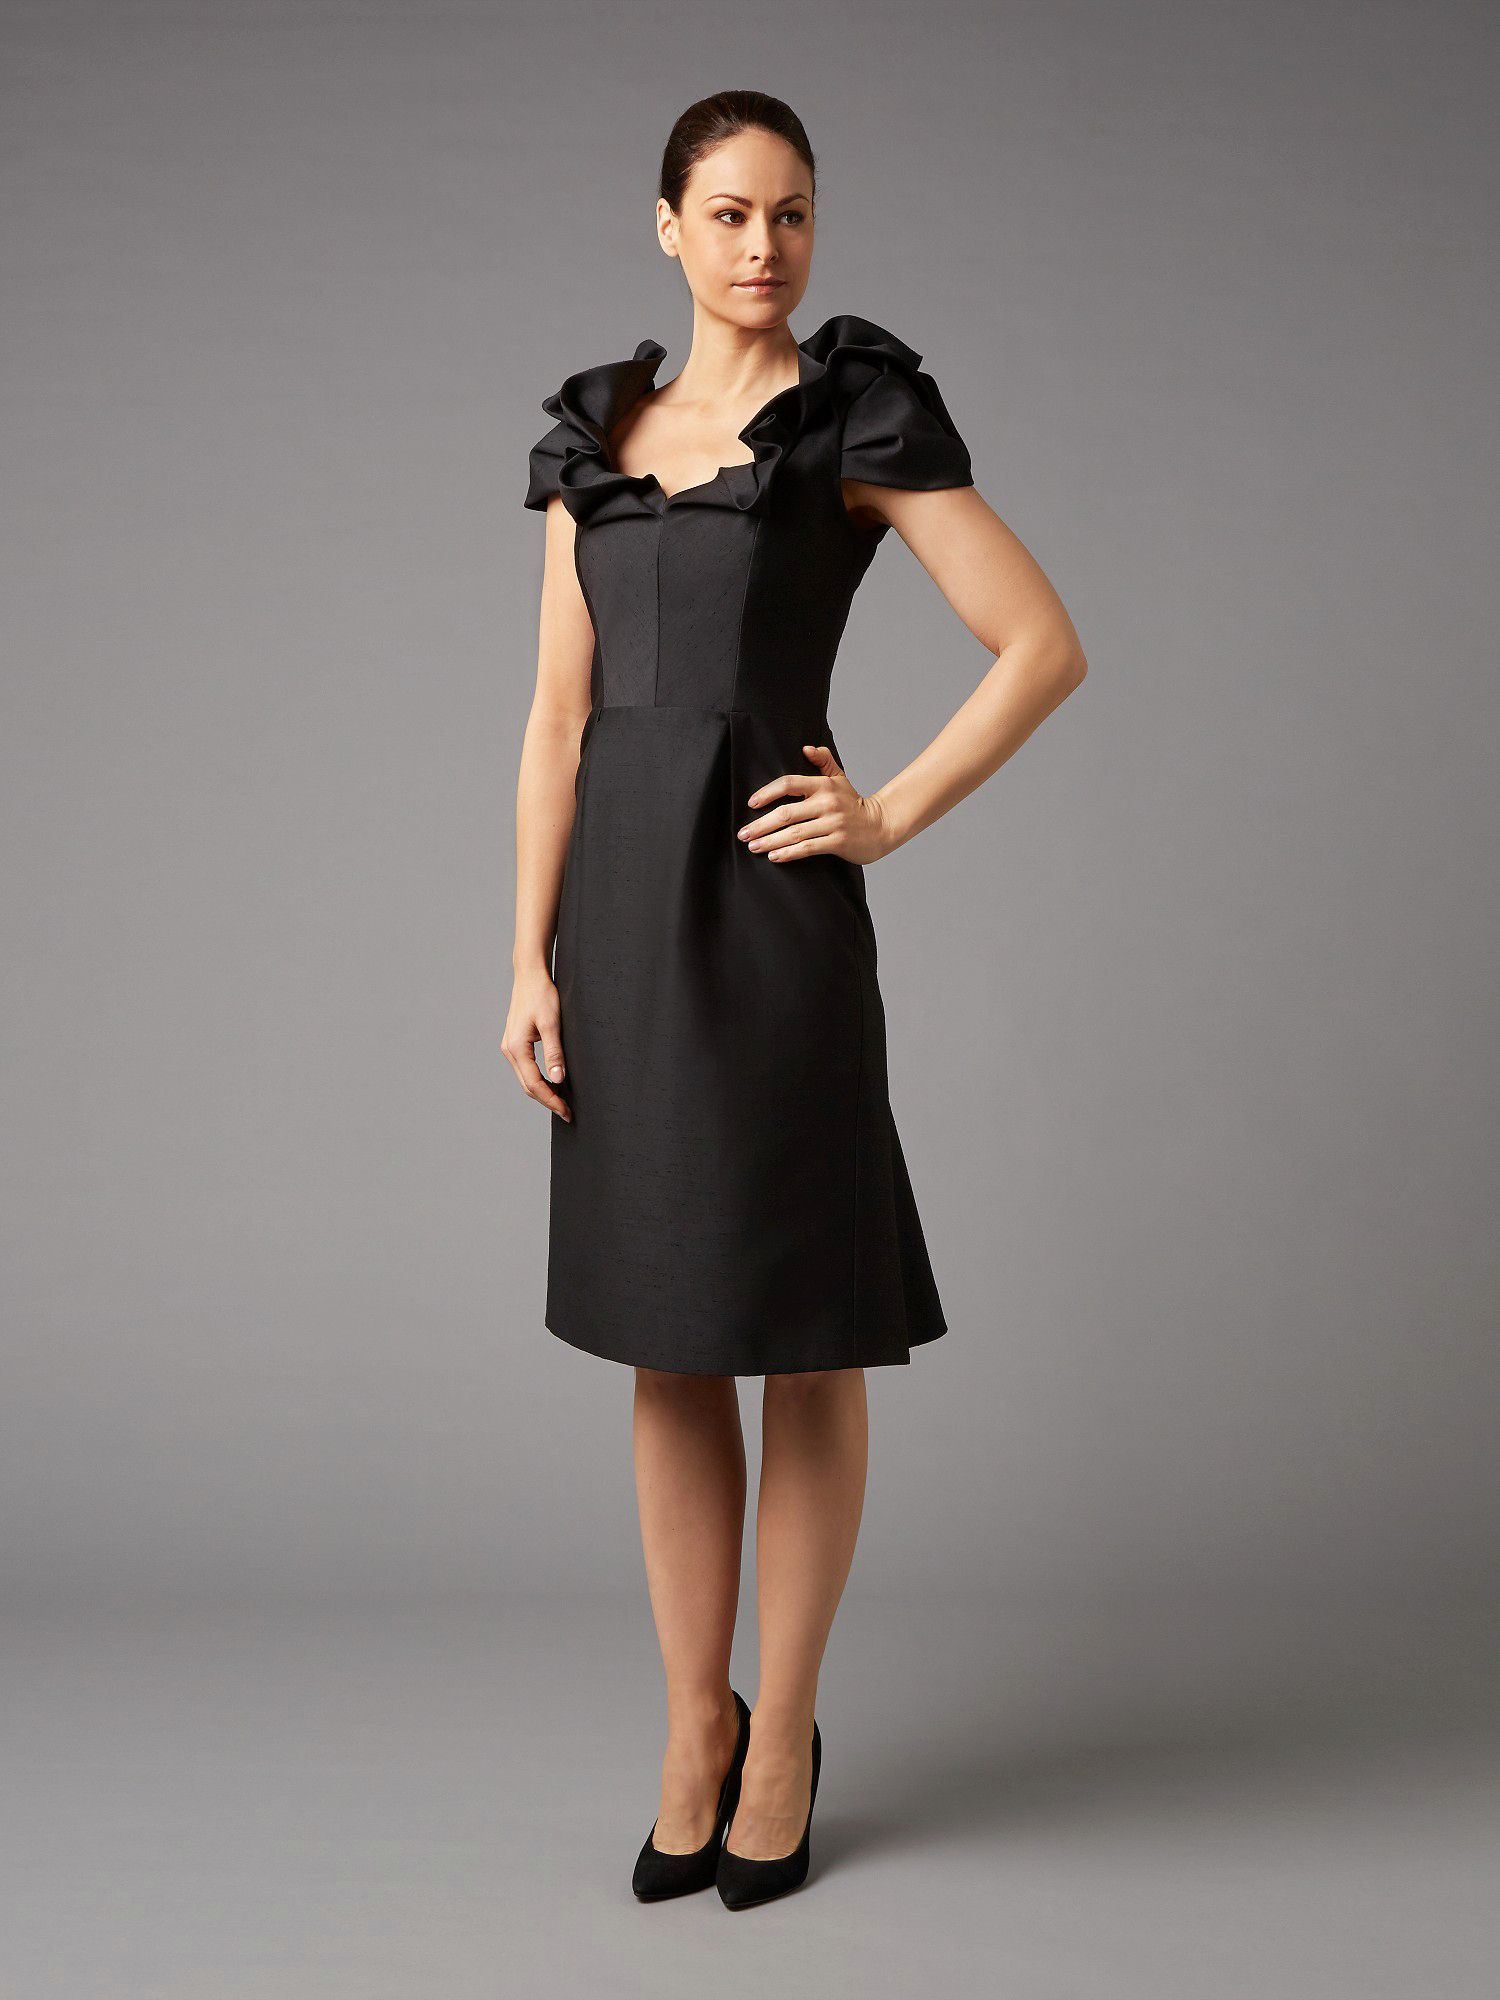 Lorcan Mullany Black Shantung Dress